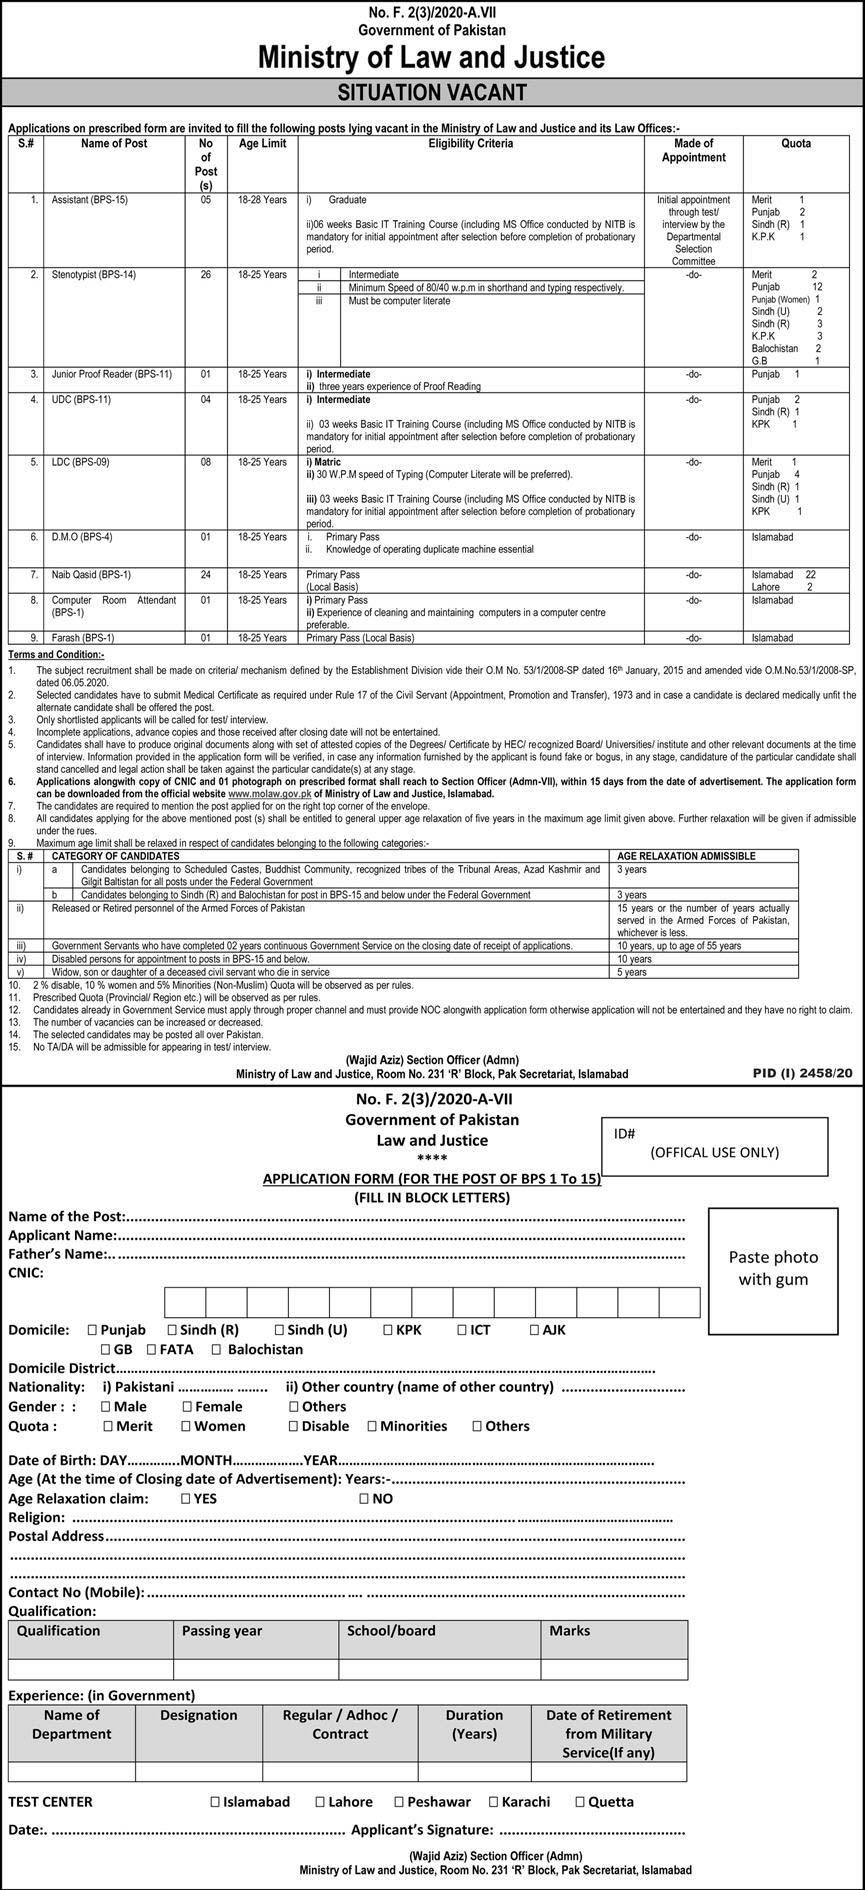 Ministry of Law & Justice Jobs 2020 Advertisement Application Form Download